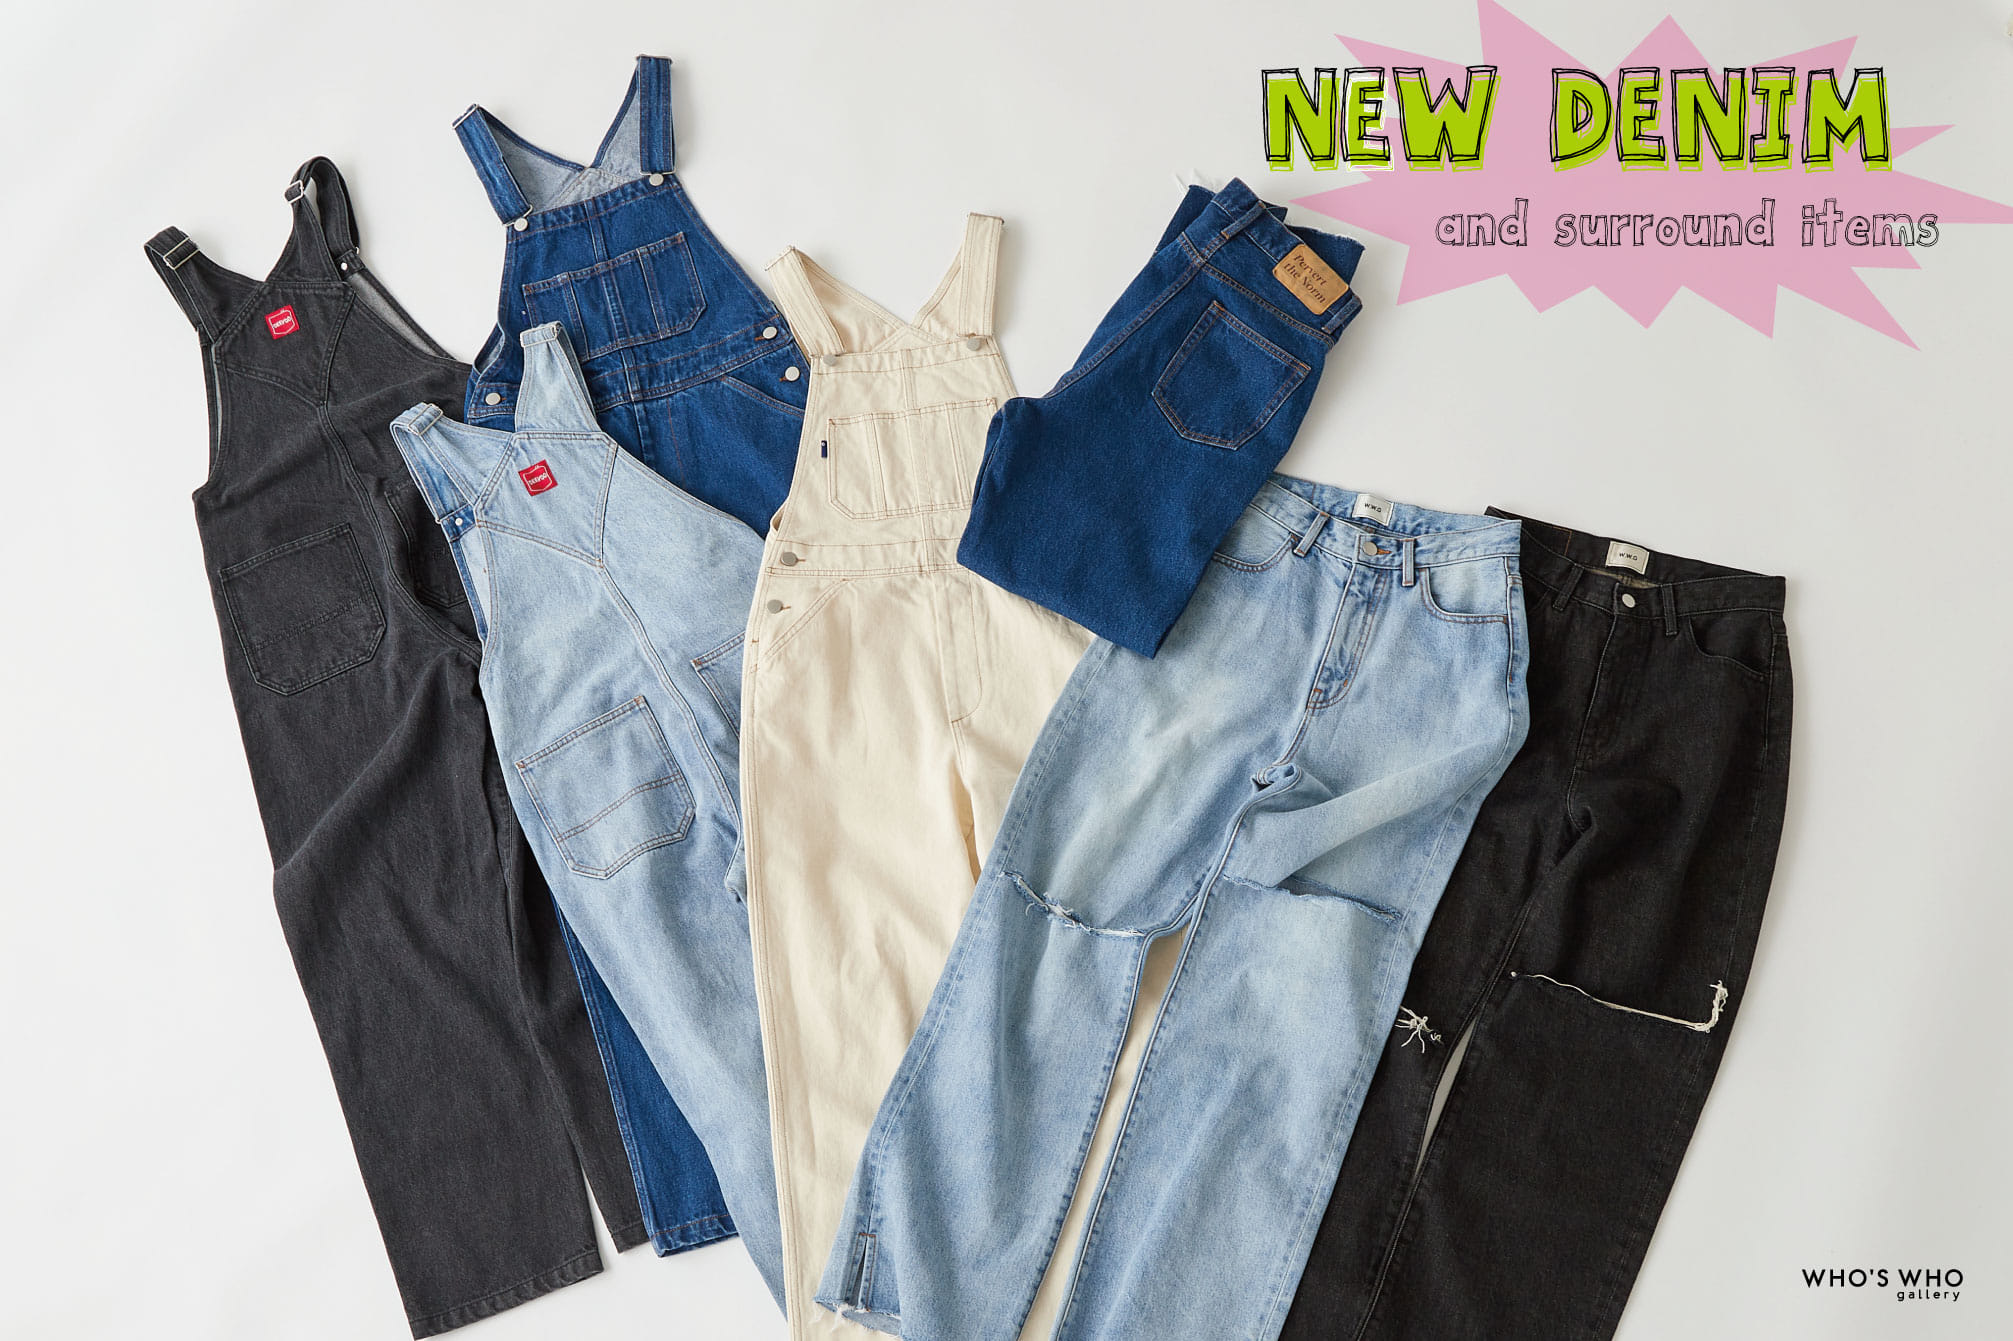 WHO'S WHO gallery 【NEW DENIM and surround items】